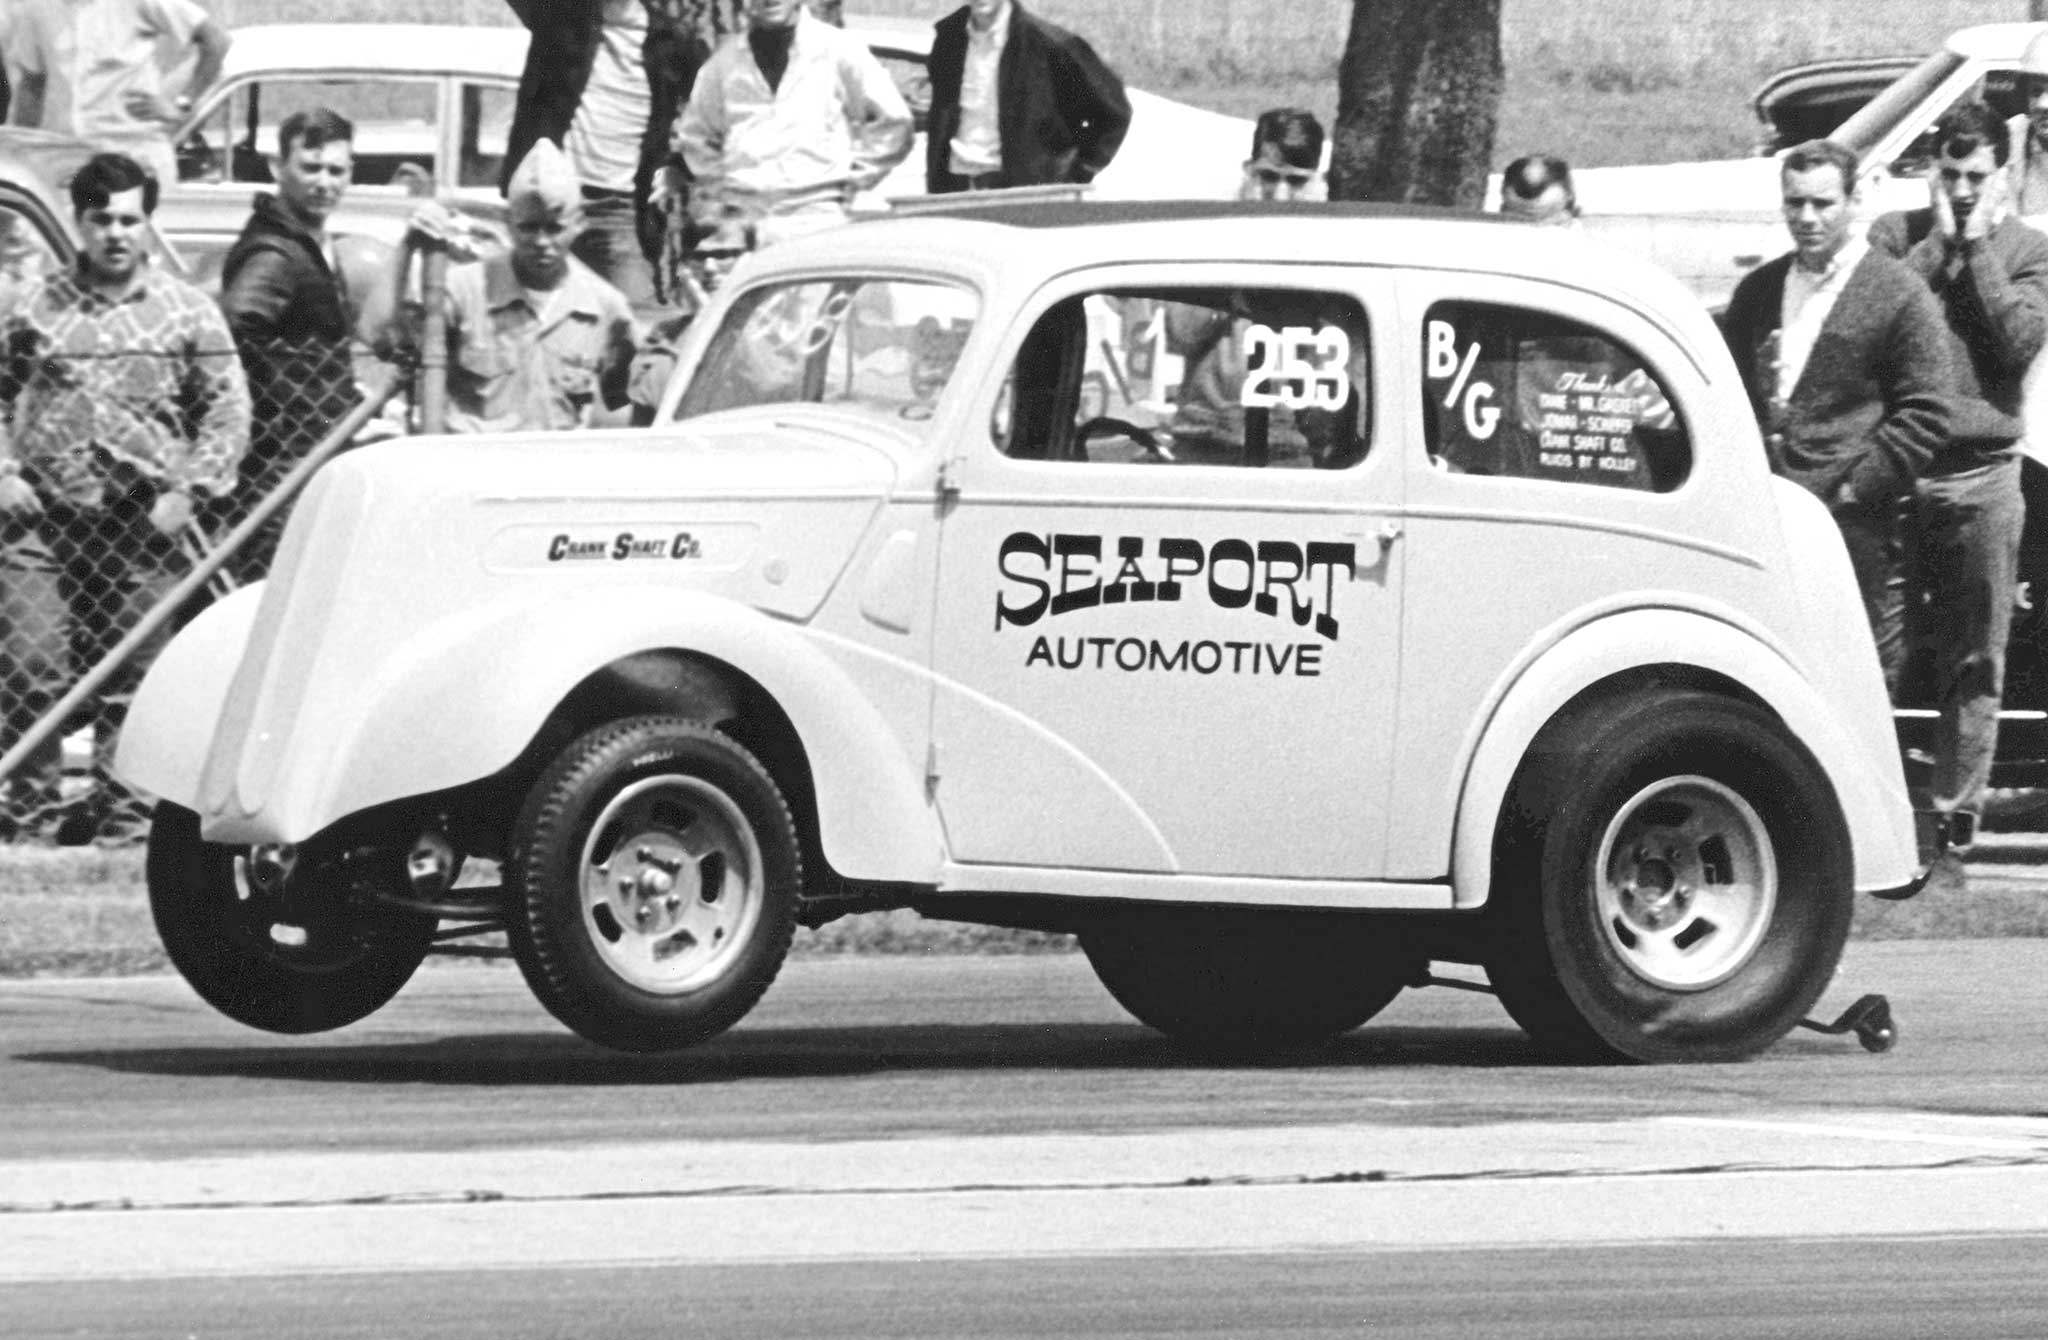 Toledo, Ohio's Dick Titsworth ran this clean 1948 Anglia in the 1960s, first as a Gasser and sometimes as an Altered. His Seaport Automotive was a northern Ohio force for race engines and machine work. He later ran alcohol Funny Cars with equal success.